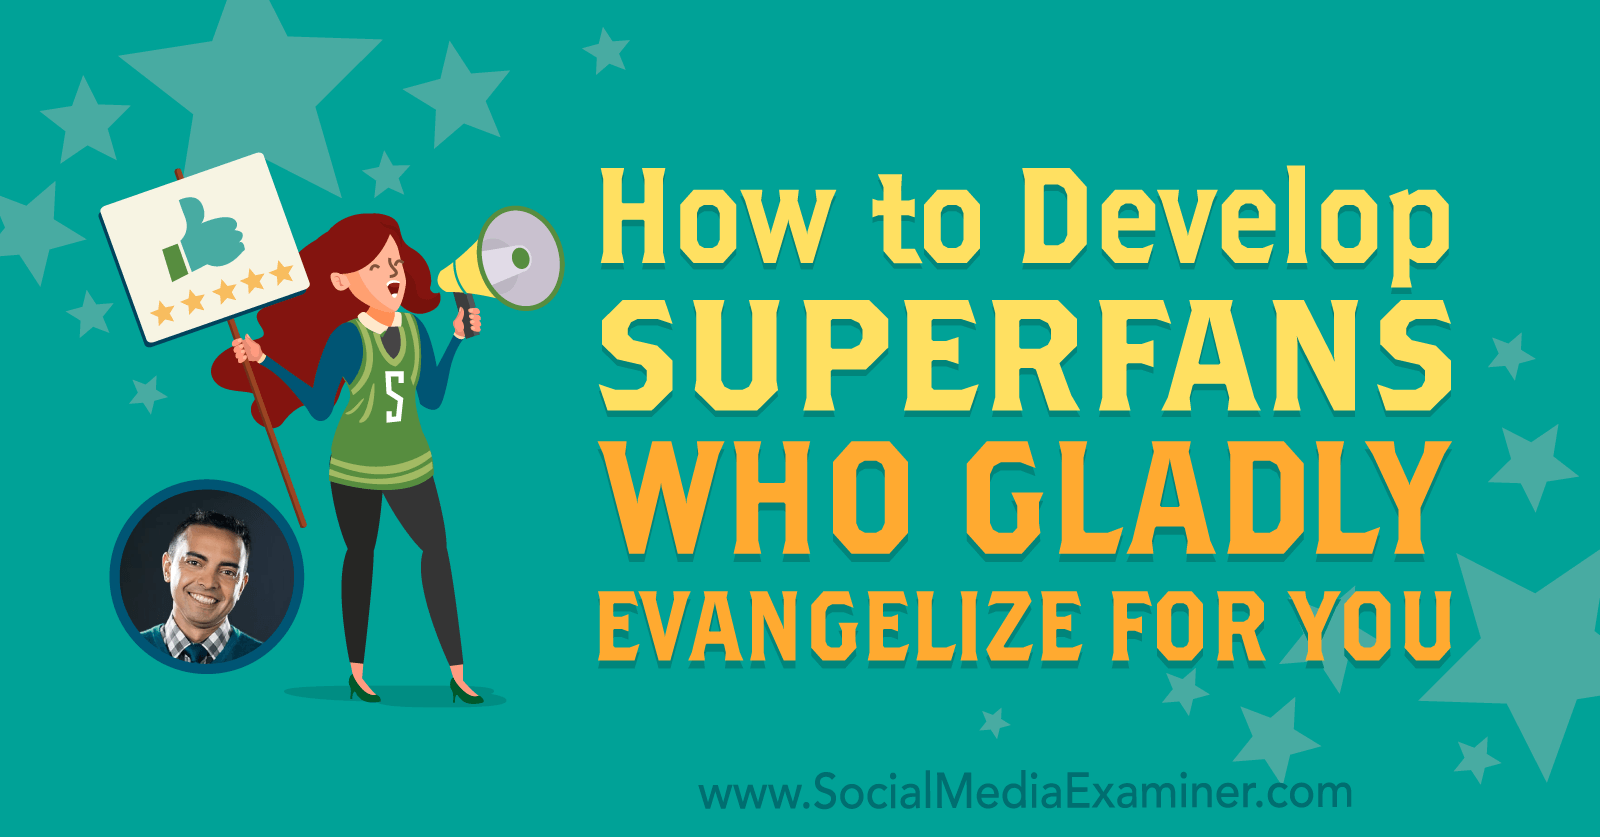 How to Develop Superfans Who Gladly Evangelize for You : Social